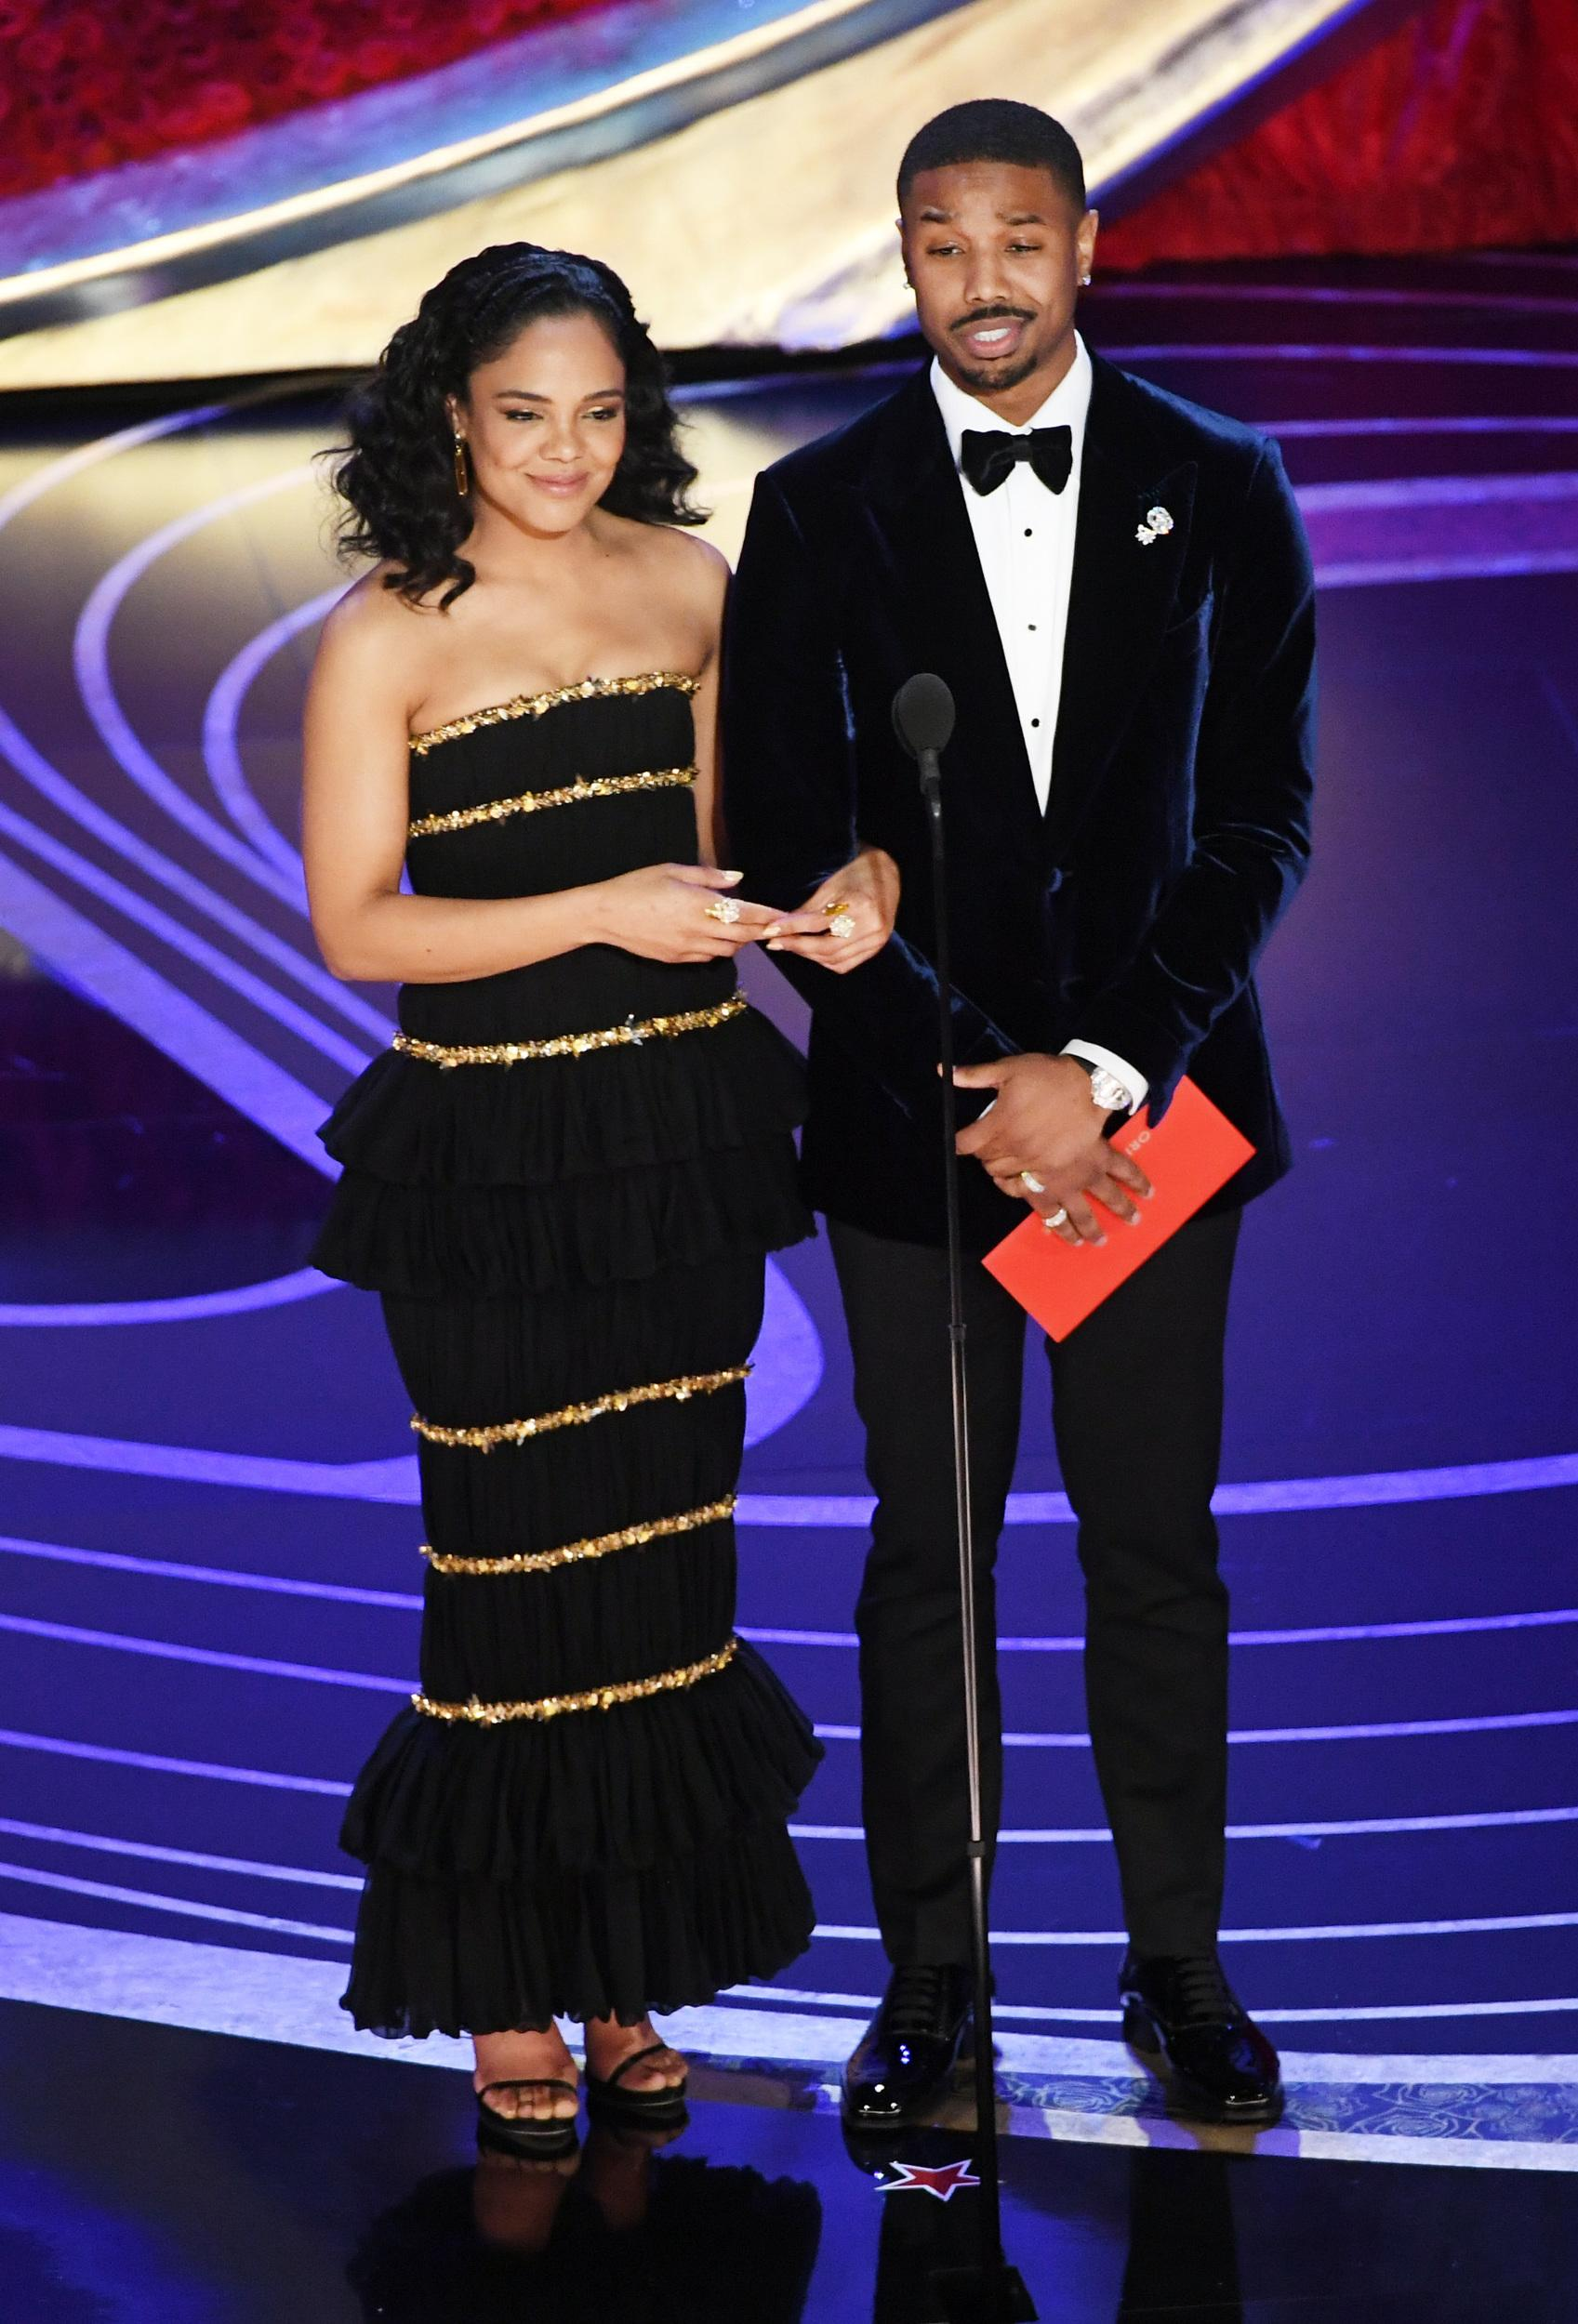 HOLLYWOOD, CALIFORNIA - FEBRUARY 24: (L-R) Tessa Thompson and Michael B. Jordan speak onstage during the 91st Annual Academy Awards at Dolby Theatre on February 24, 2019 in Hollywood, California. (Photo by Kevin Winter/Getty Images)